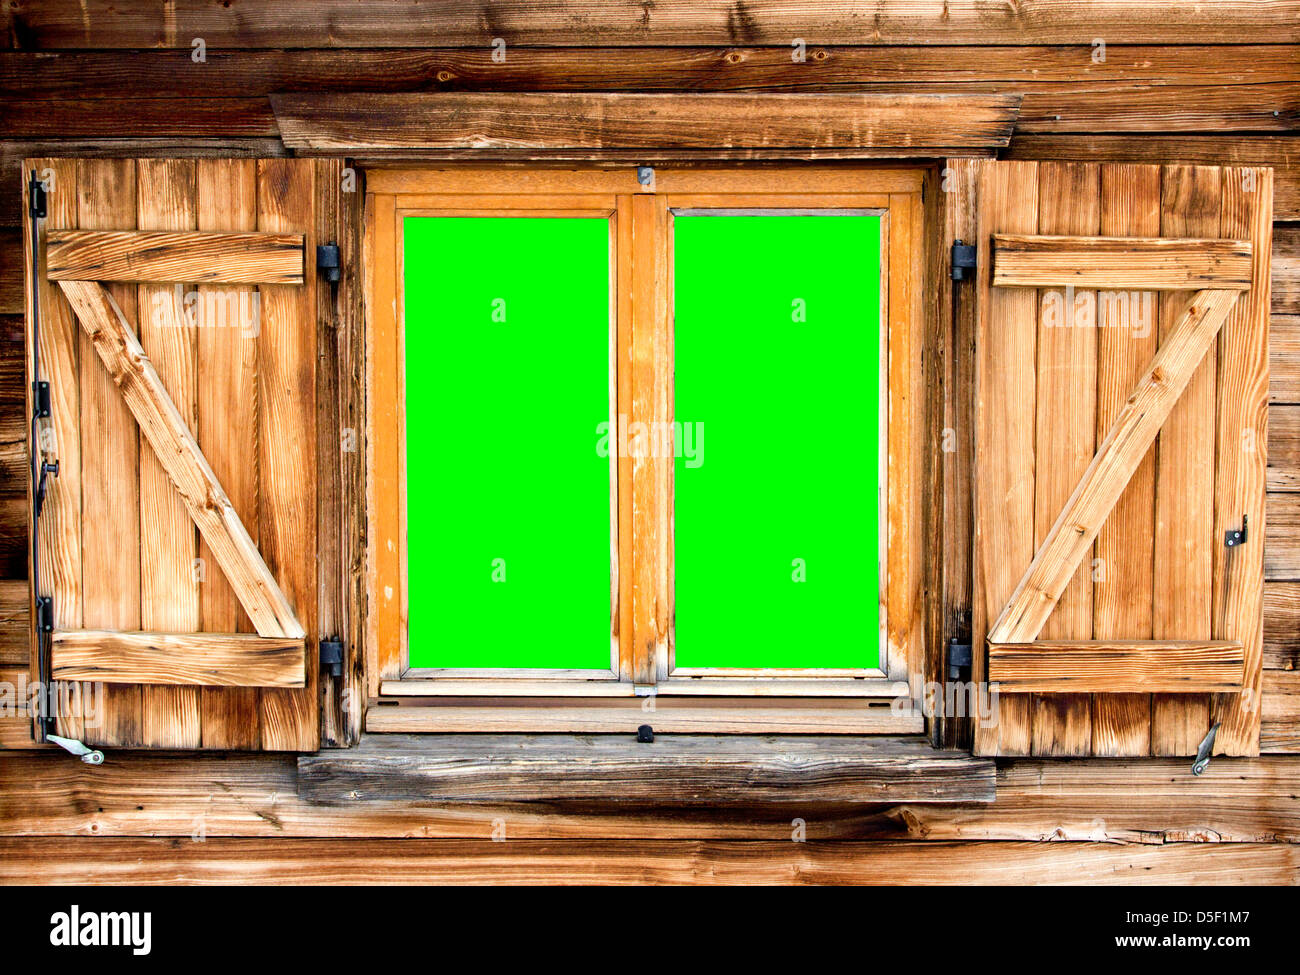 Weathered facade of a mountain hut with green screen